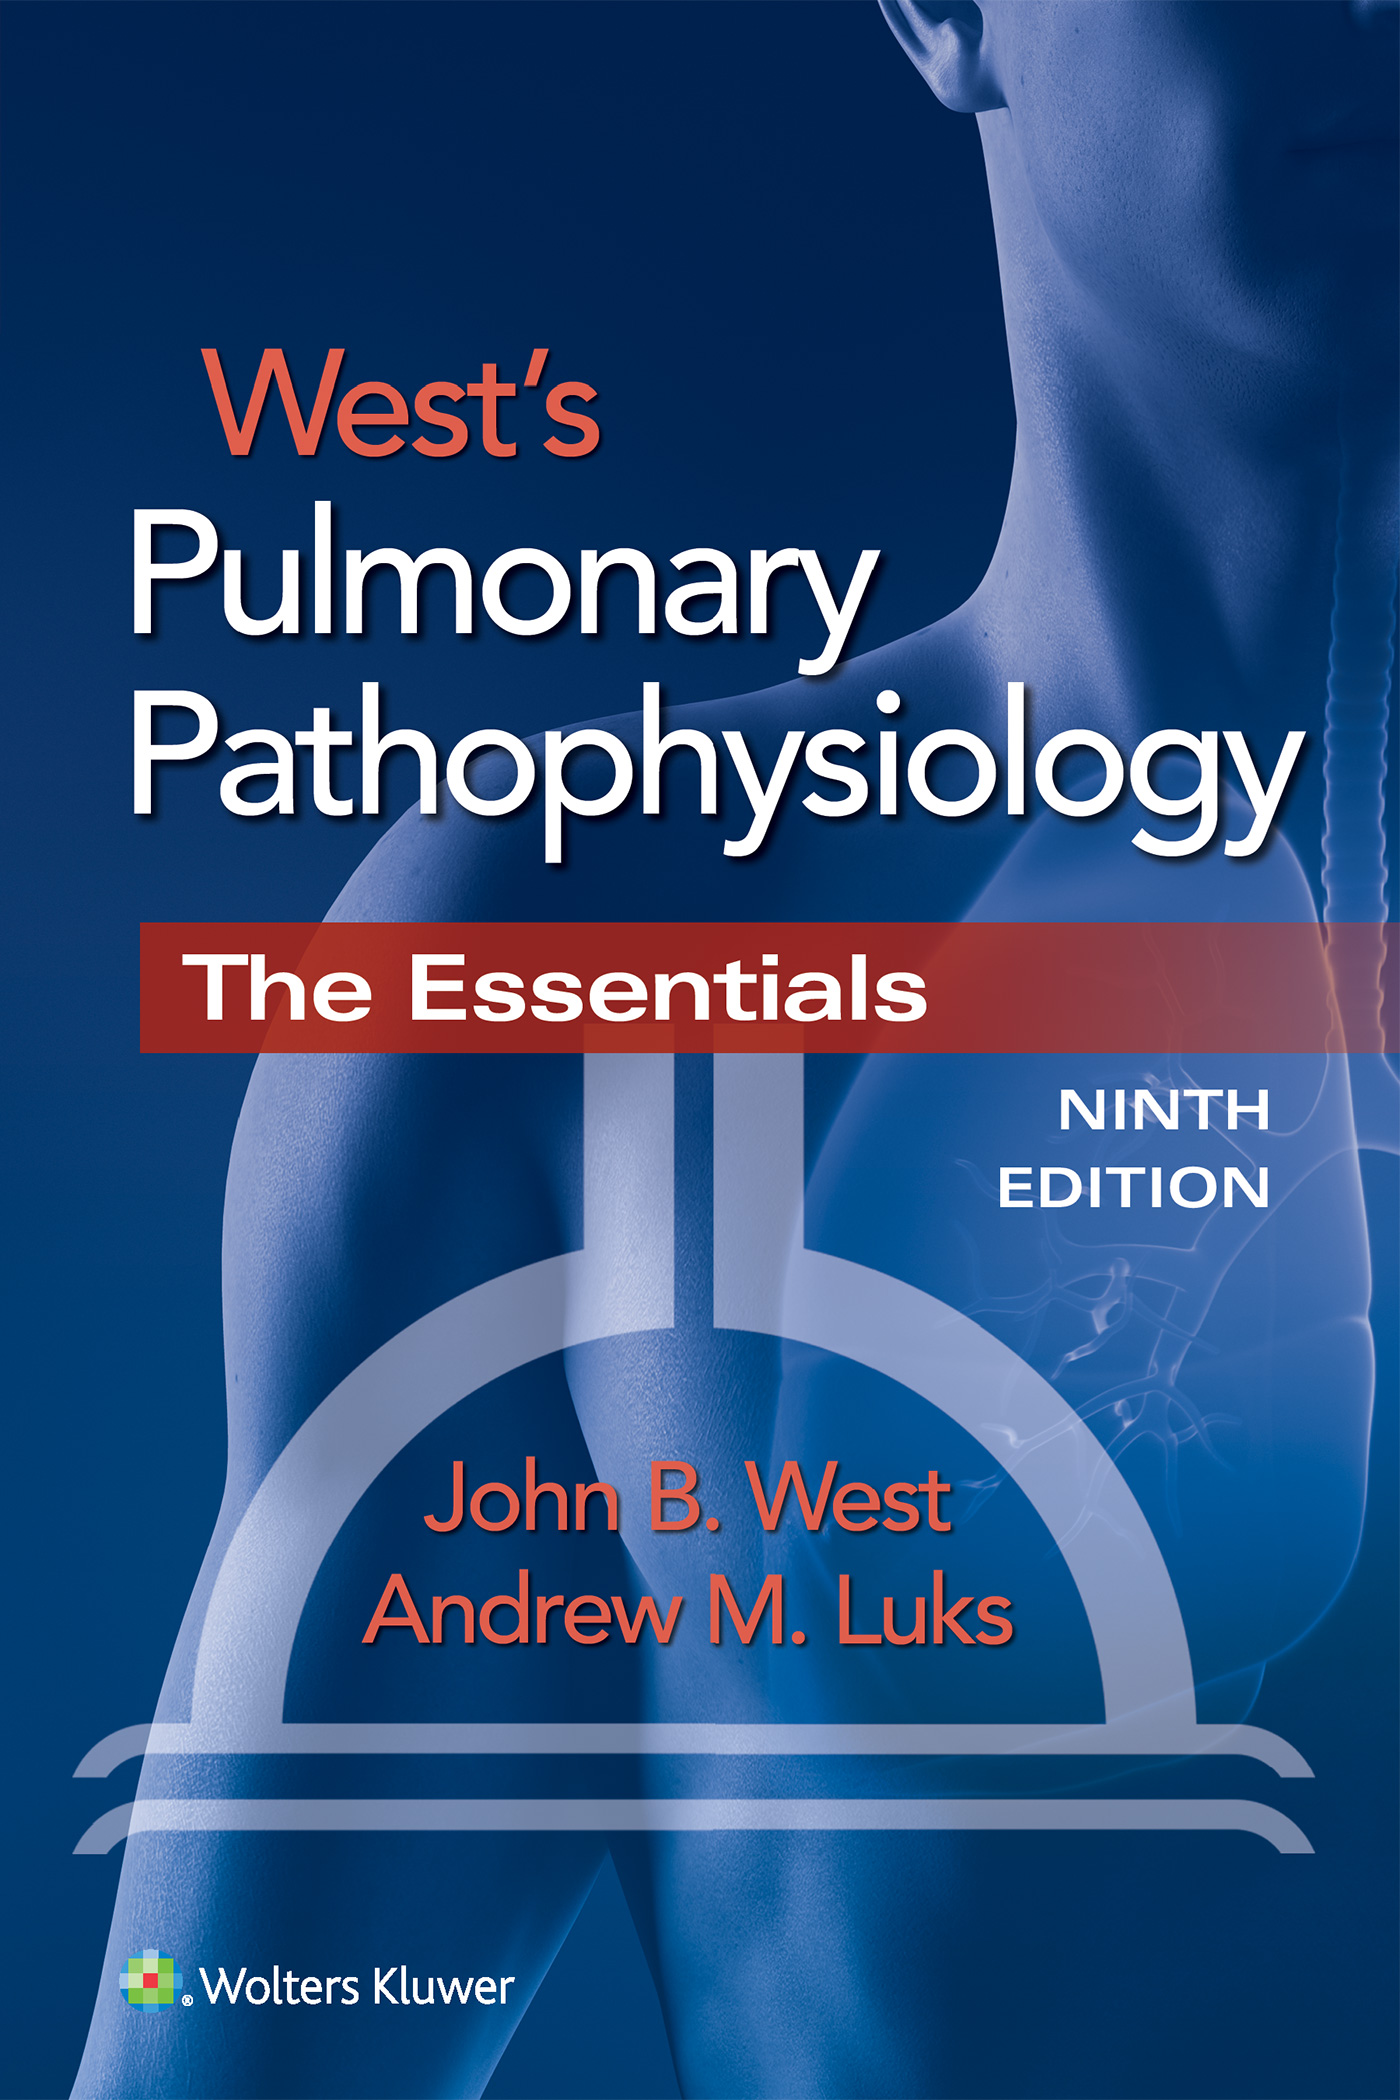 Medicine lww official store wolters kluwer wolters kluwer book wests pulmonary pathophysiology xflitez Image collections